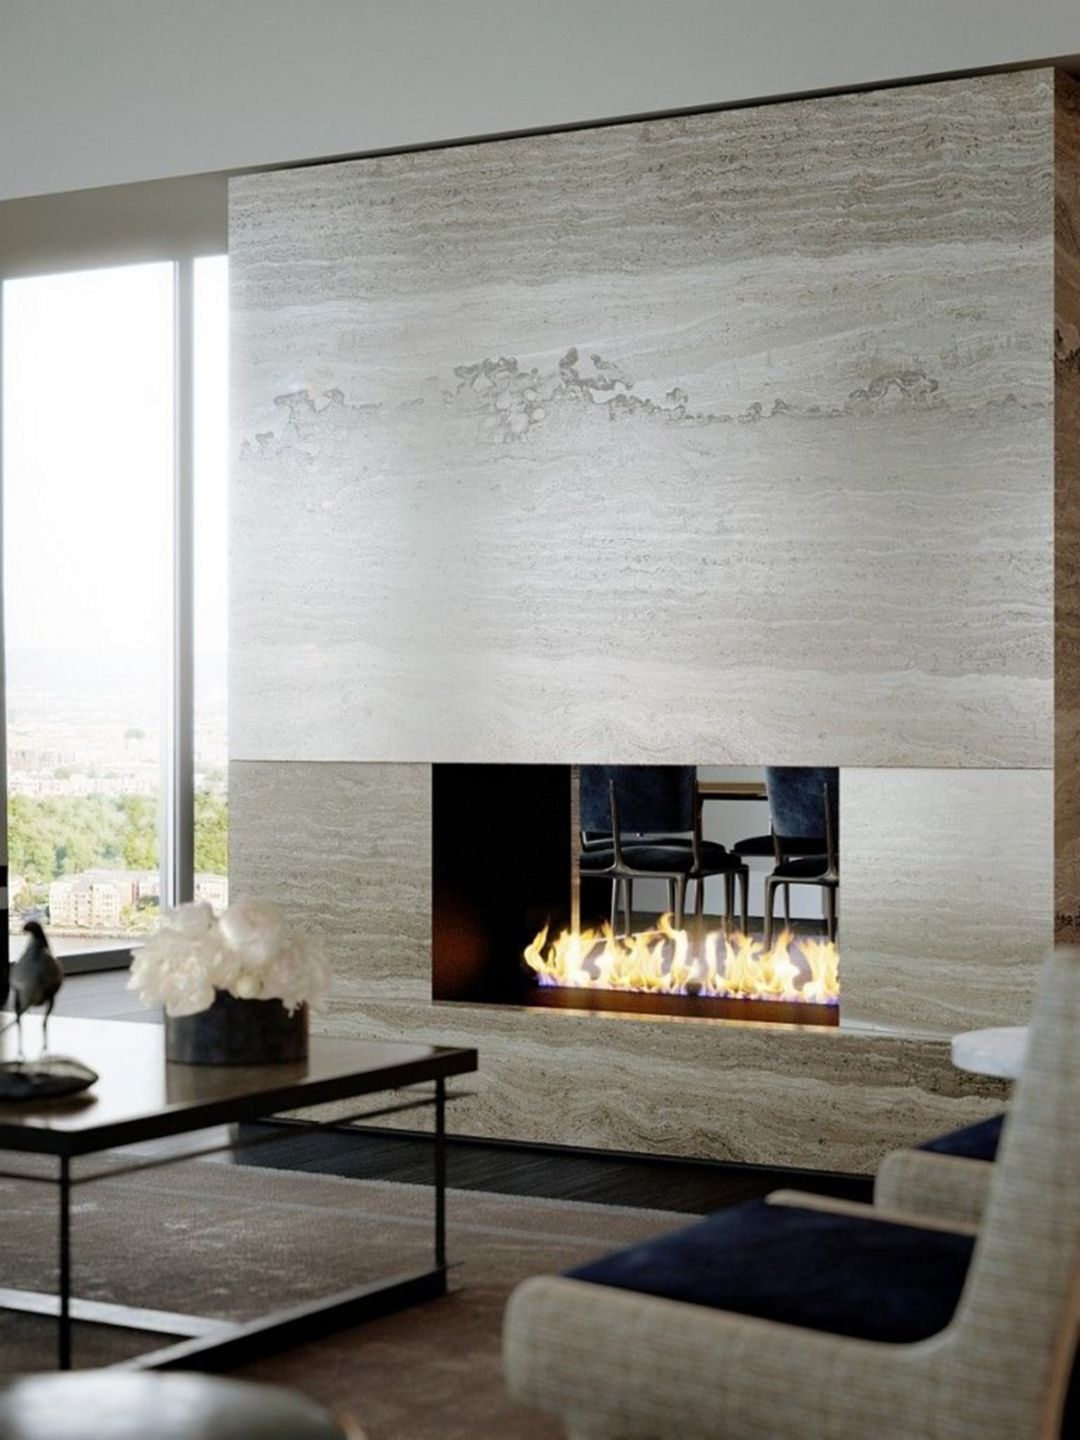 30 Beautiful Modern Fireplaces For Winter Design Ideas Home Fireplace Living Room With Fireplace Fireplace Design